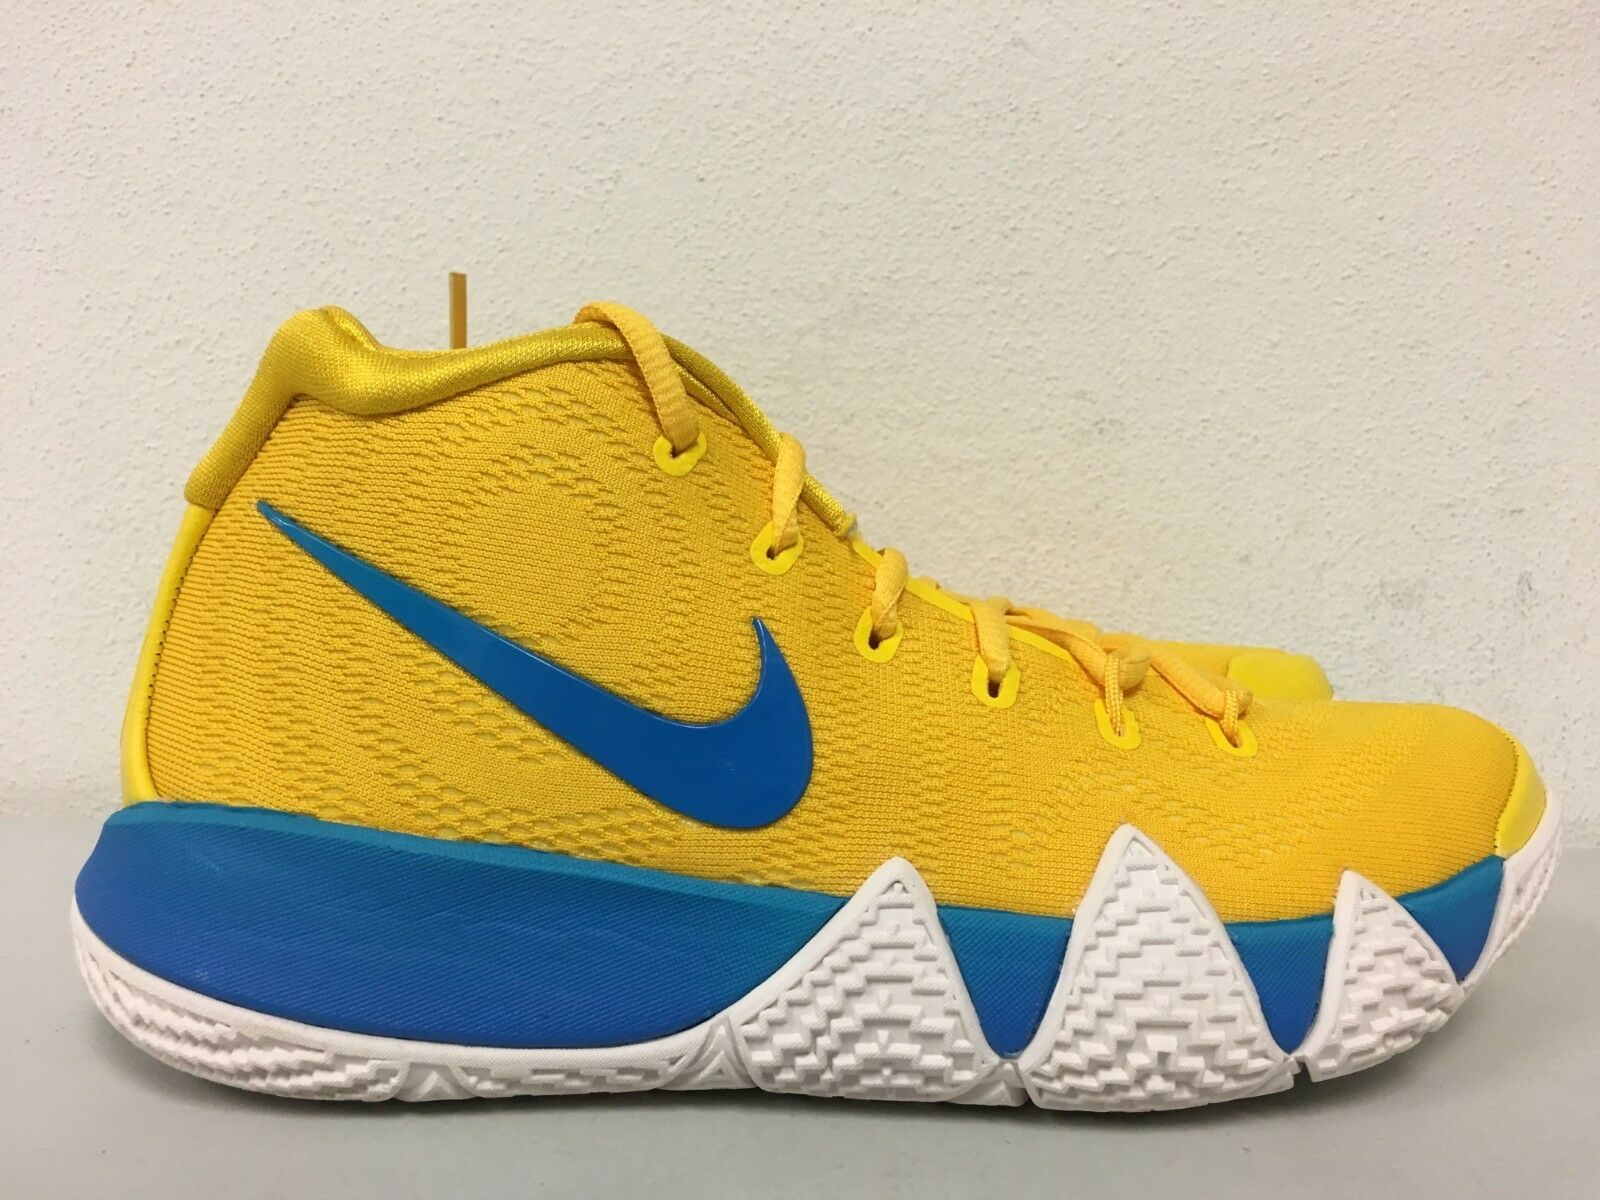 Nike Air Zoom Kyrie Irving 4 KIX Cereal yellow Multi-color BV0425 700 Size 7